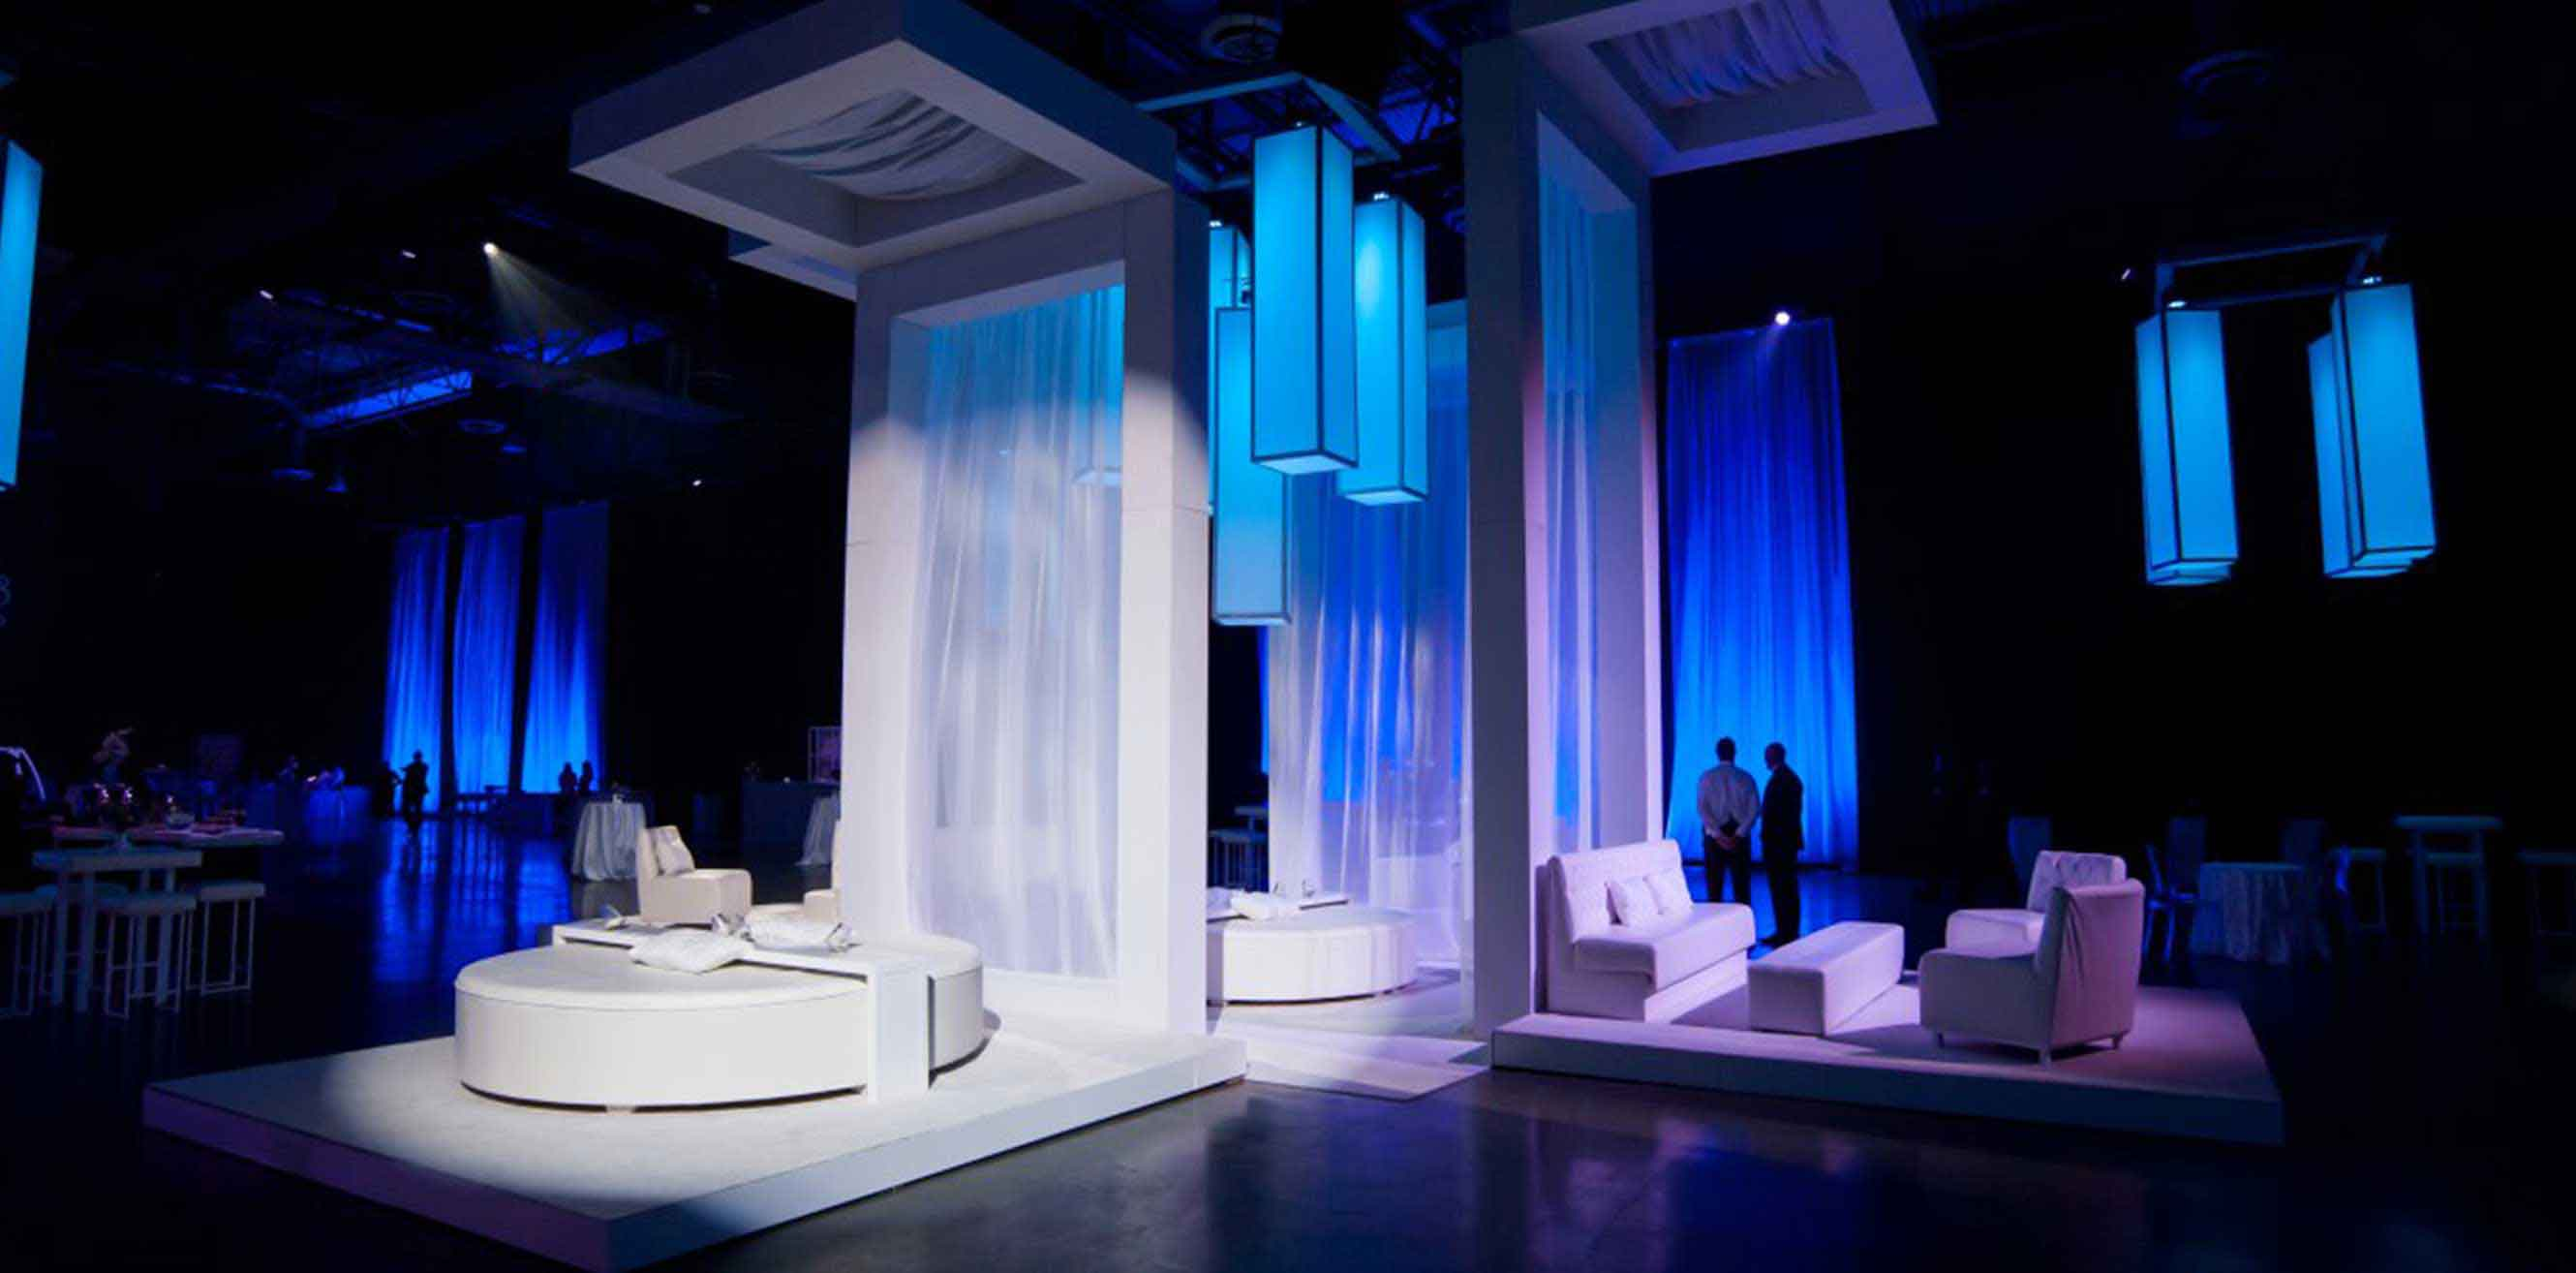 Giant fabricated structures in an event space